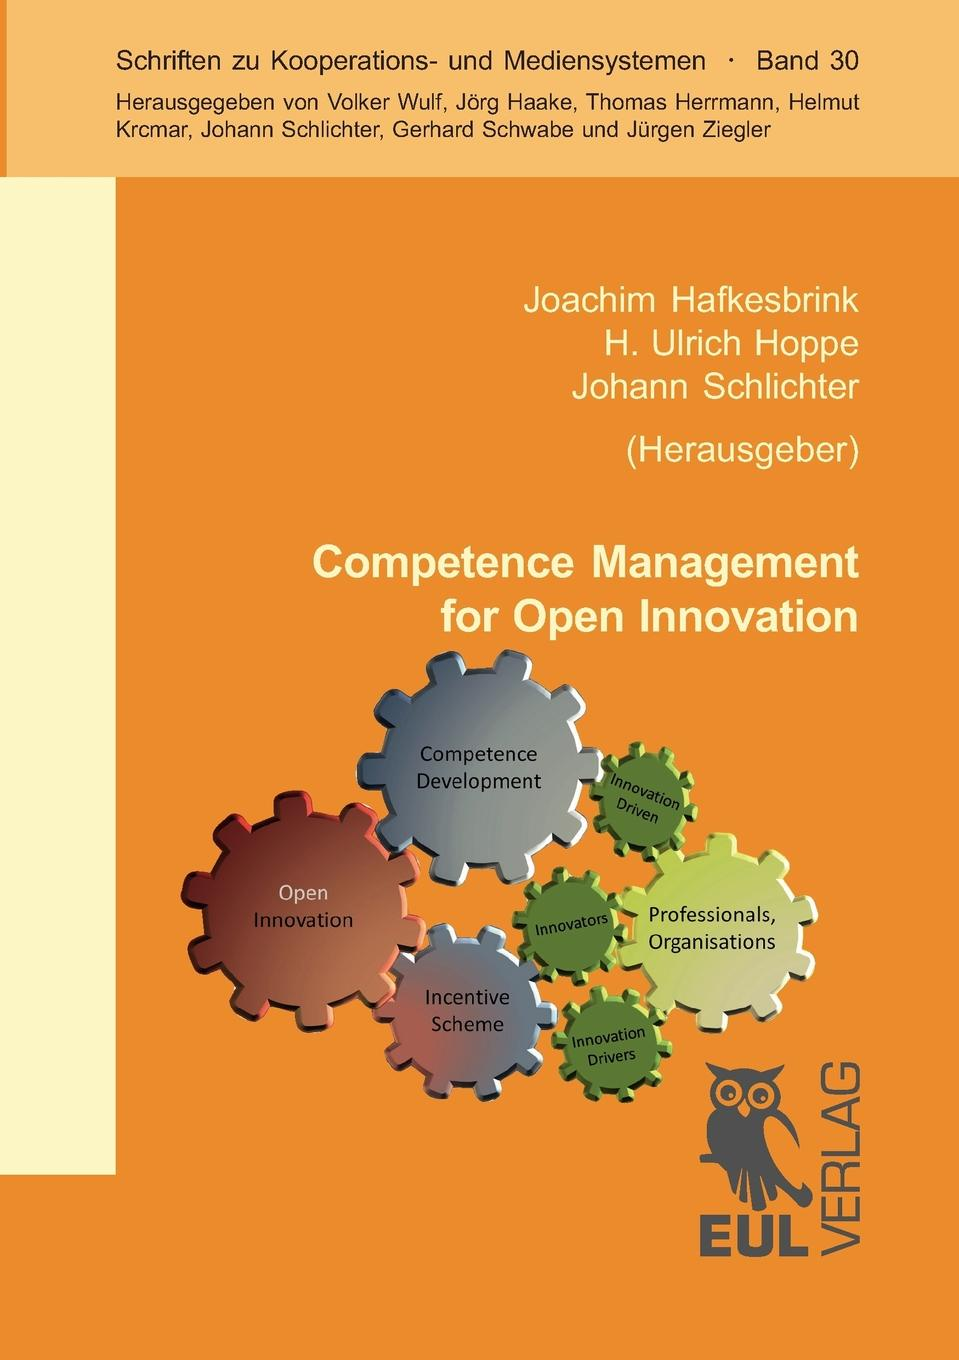 Competence Management for Open Innovation design process and innovation